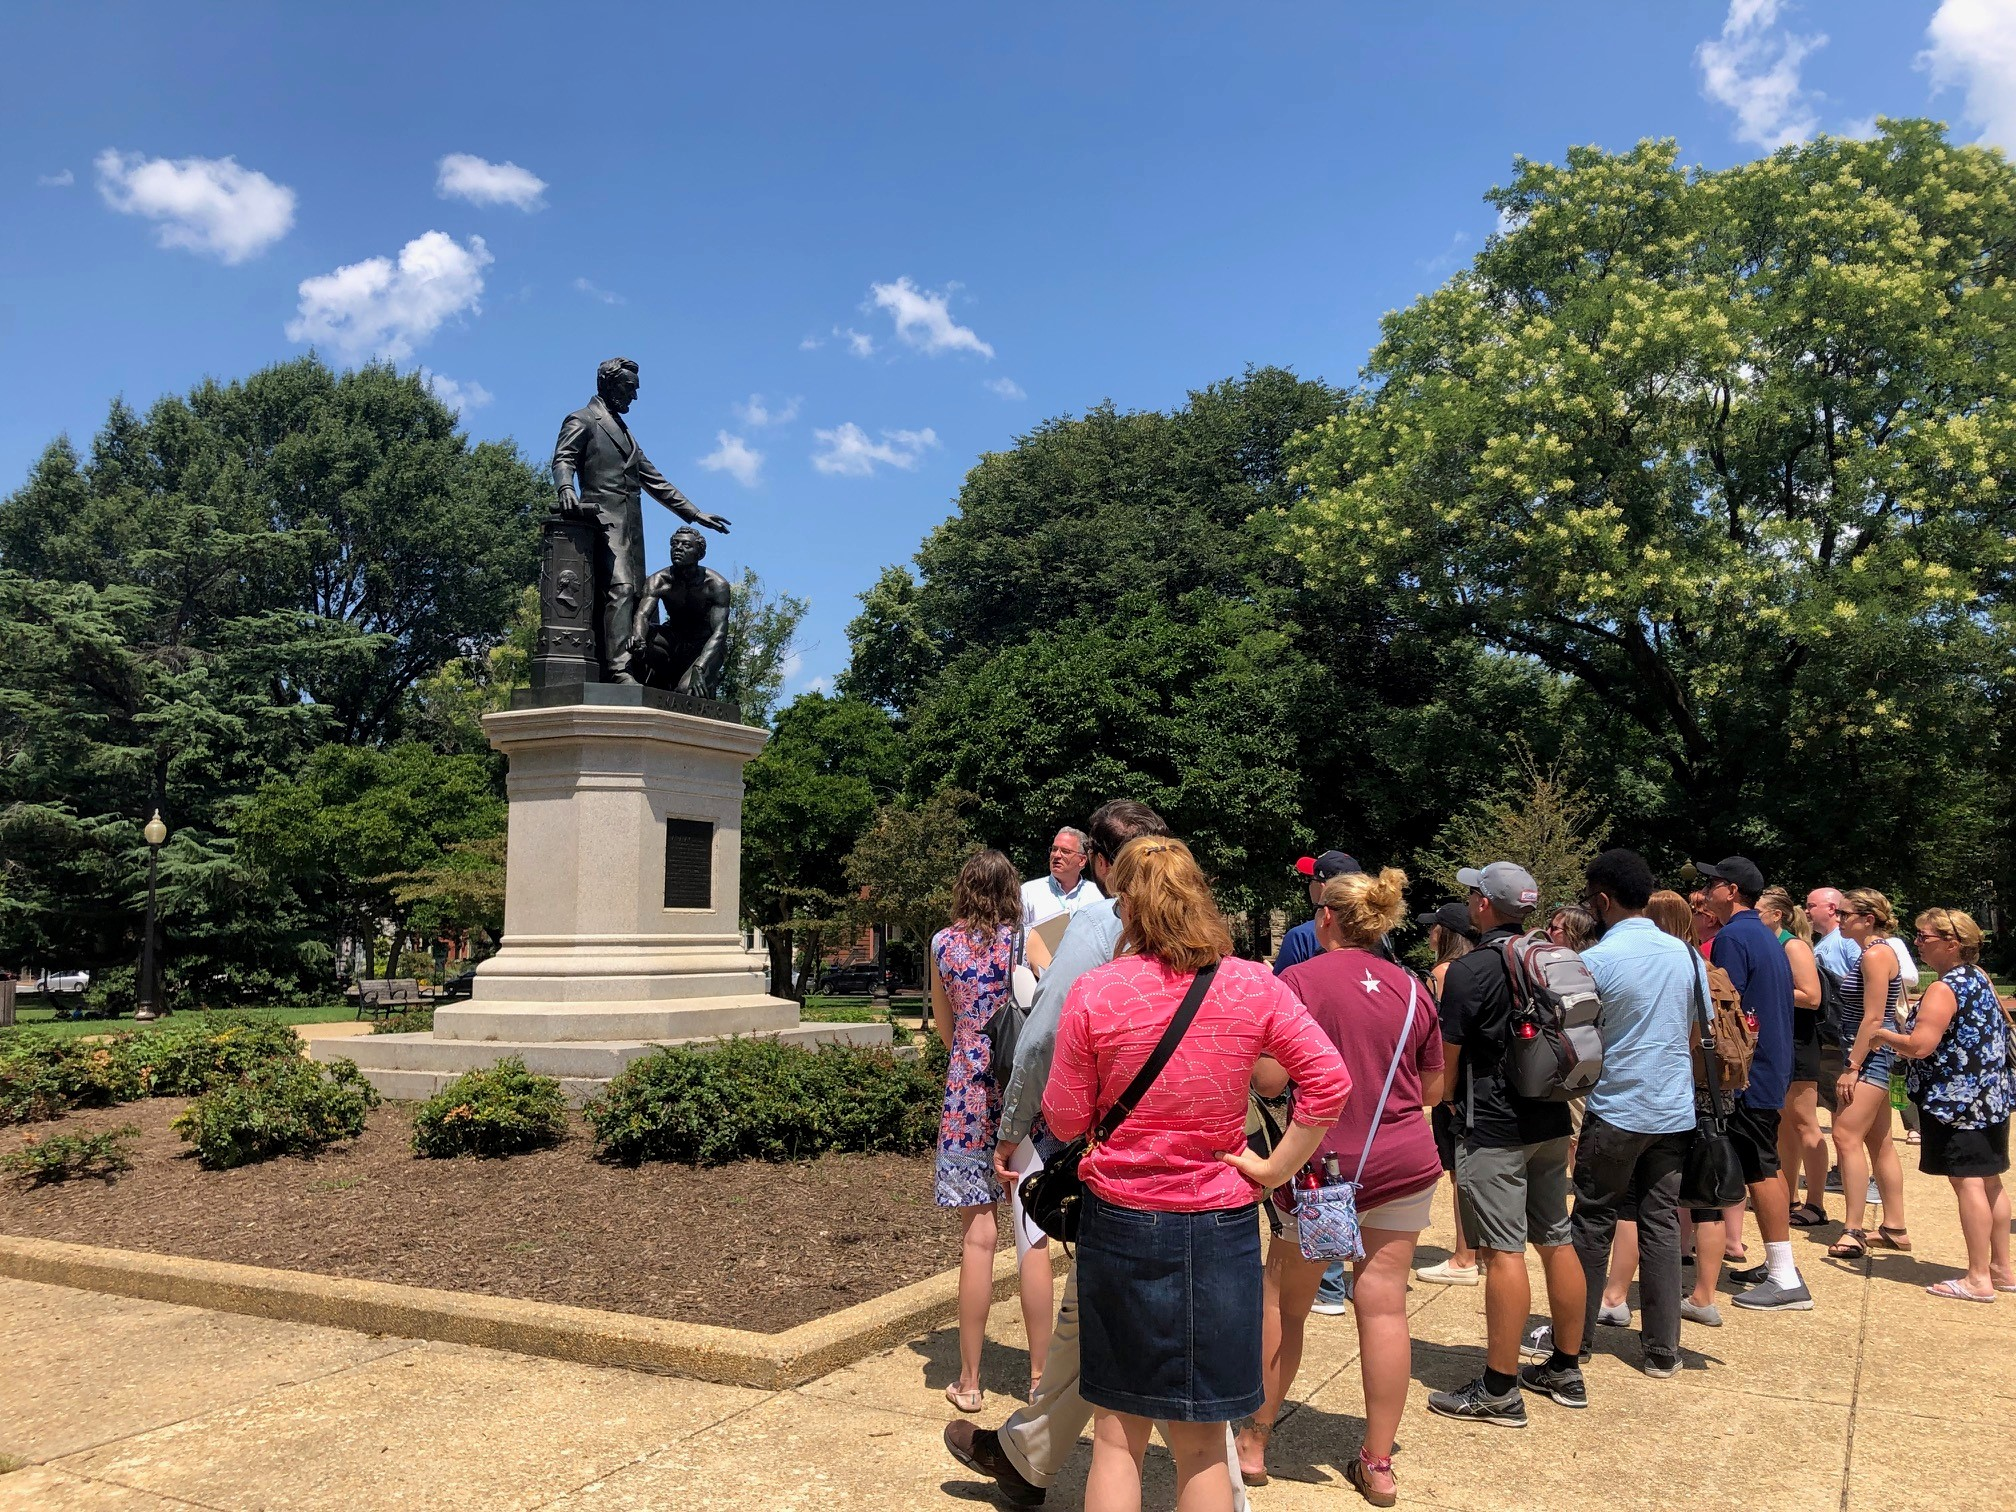 Teachers stand on DC's Lincoln's Park observing a statue of Abraham Lincoln and an emancipated slave. Lincoln stands and the emancipated man kneels beside him.